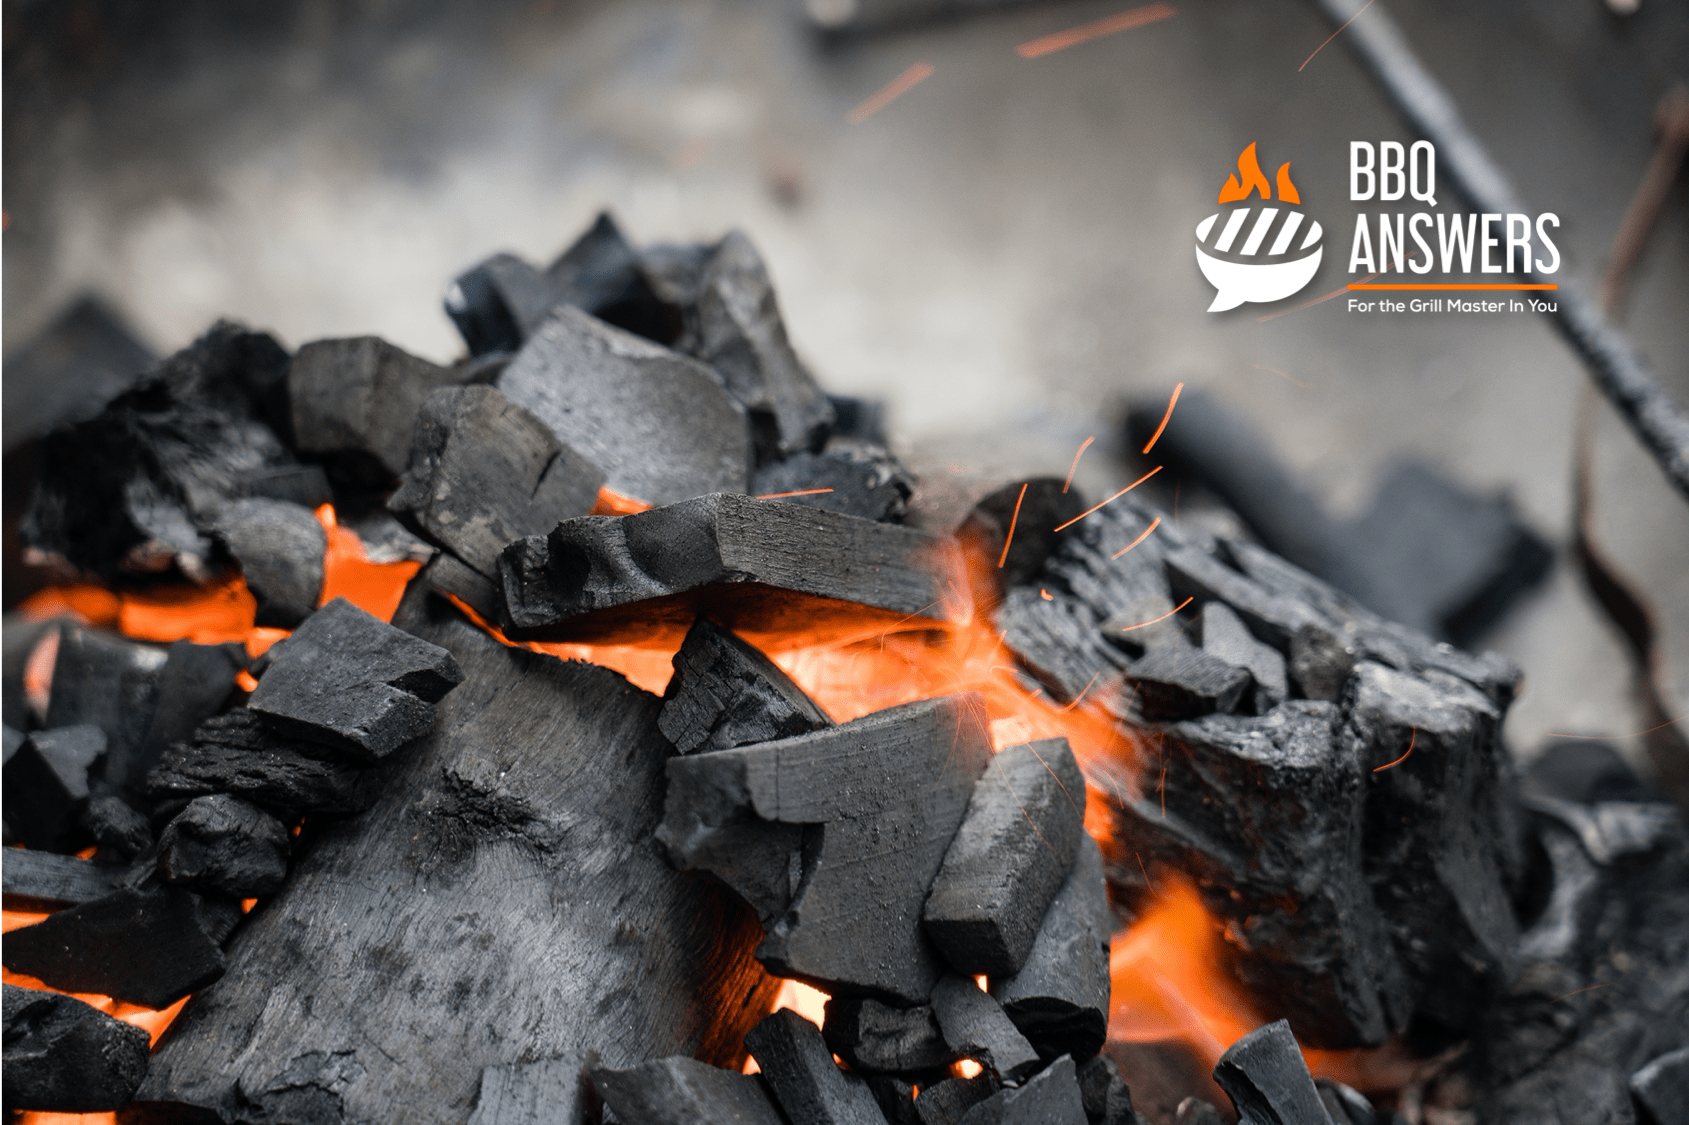 Charcoal as Primary Source of BBQ Fuel | BBQanswers